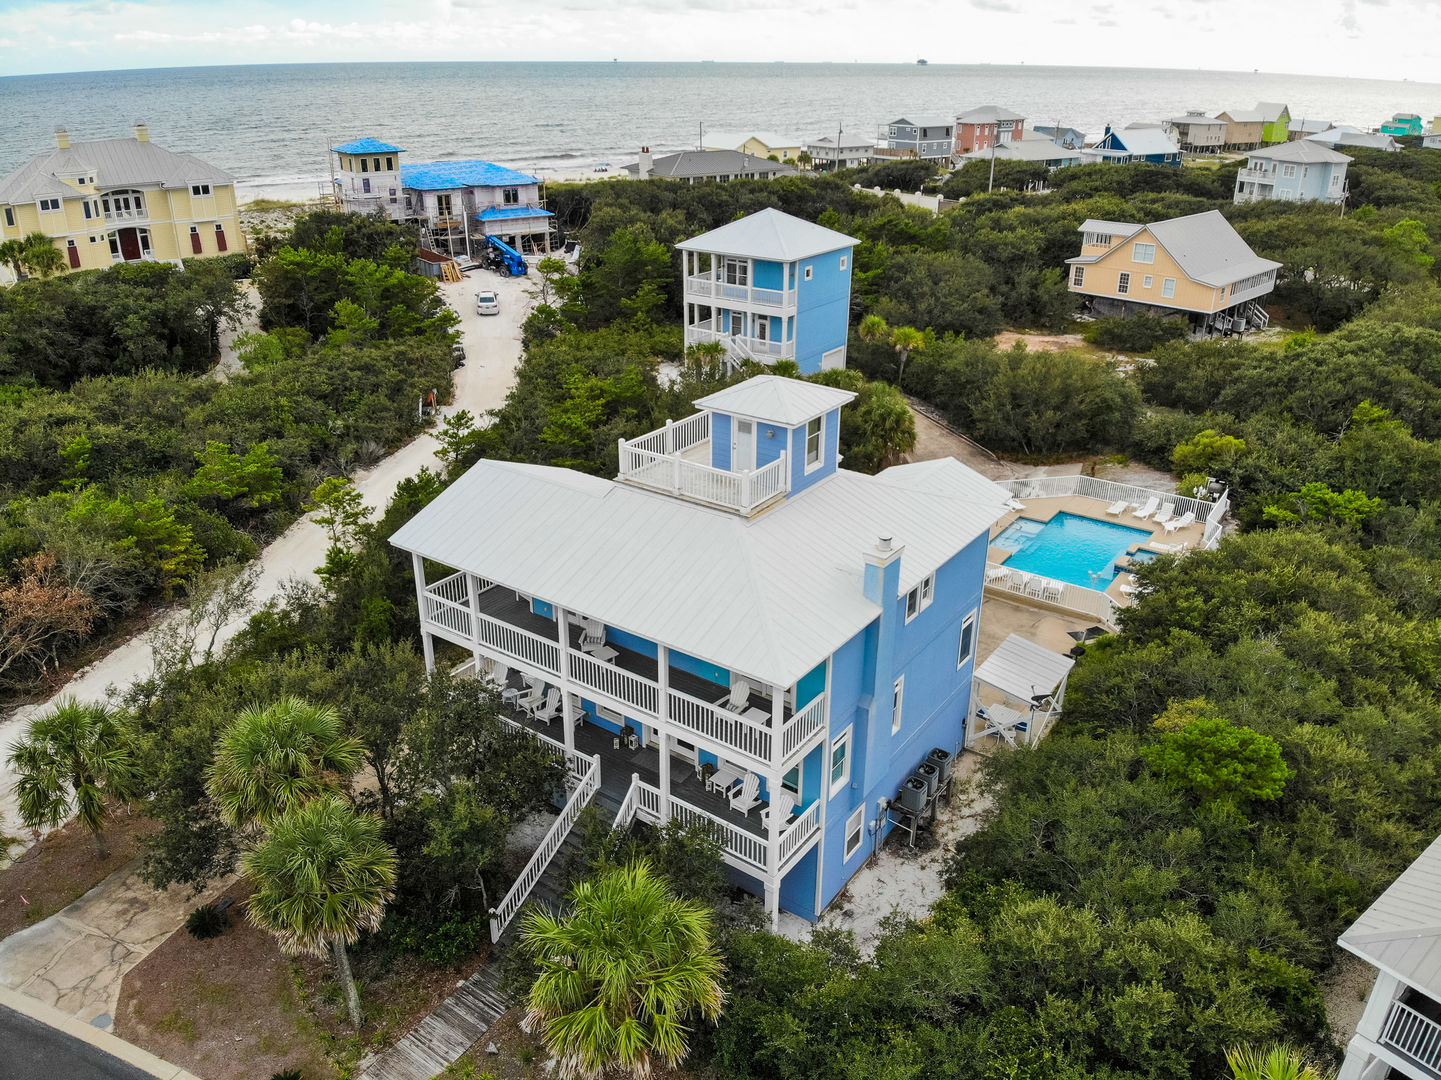 An Image From Above of the Vacation Home in Gulf Shores.